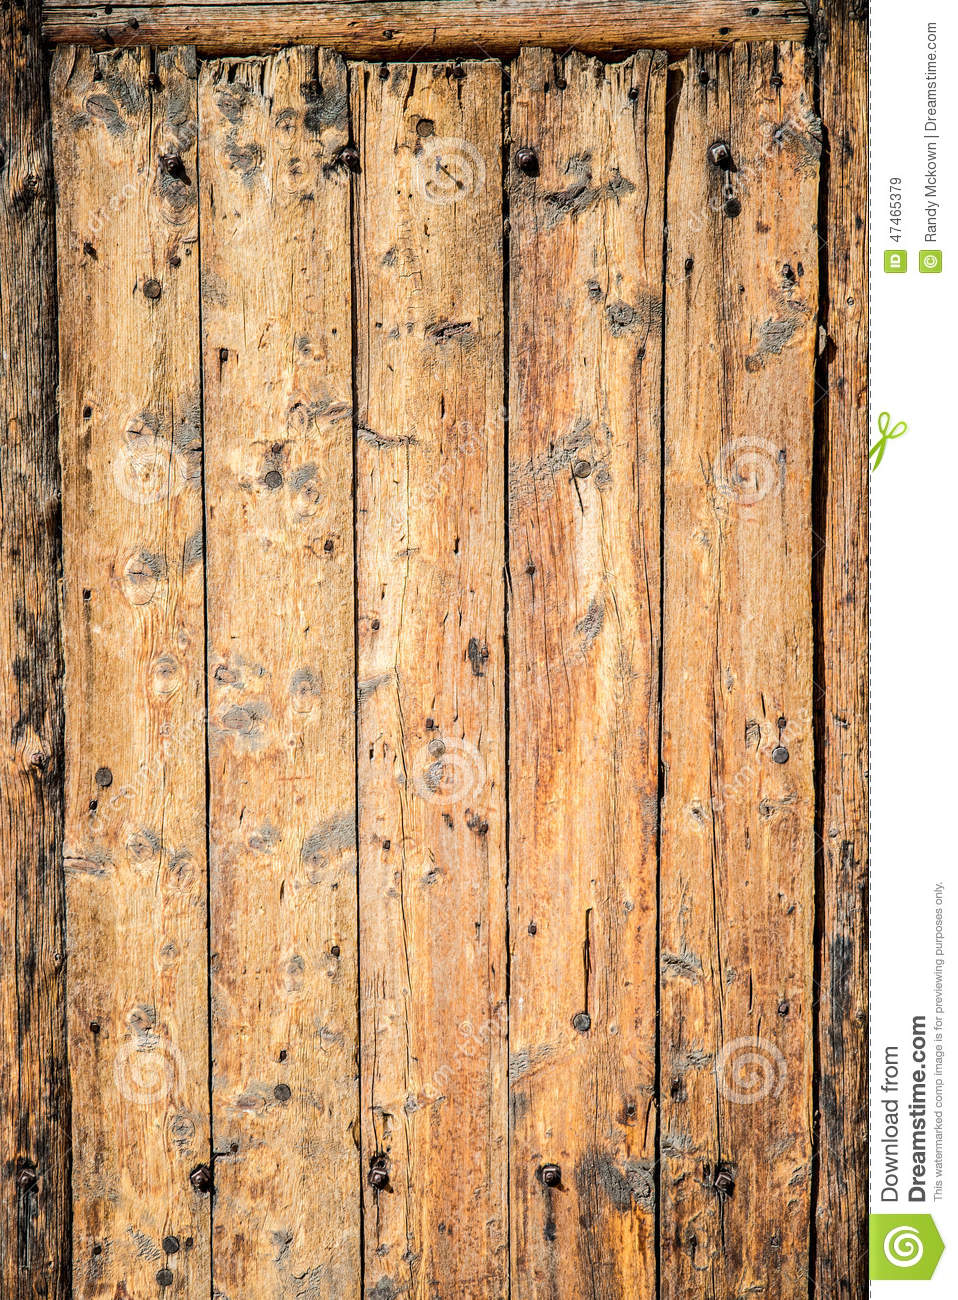 Old wood door background stock image. Image of doorway - 47465379